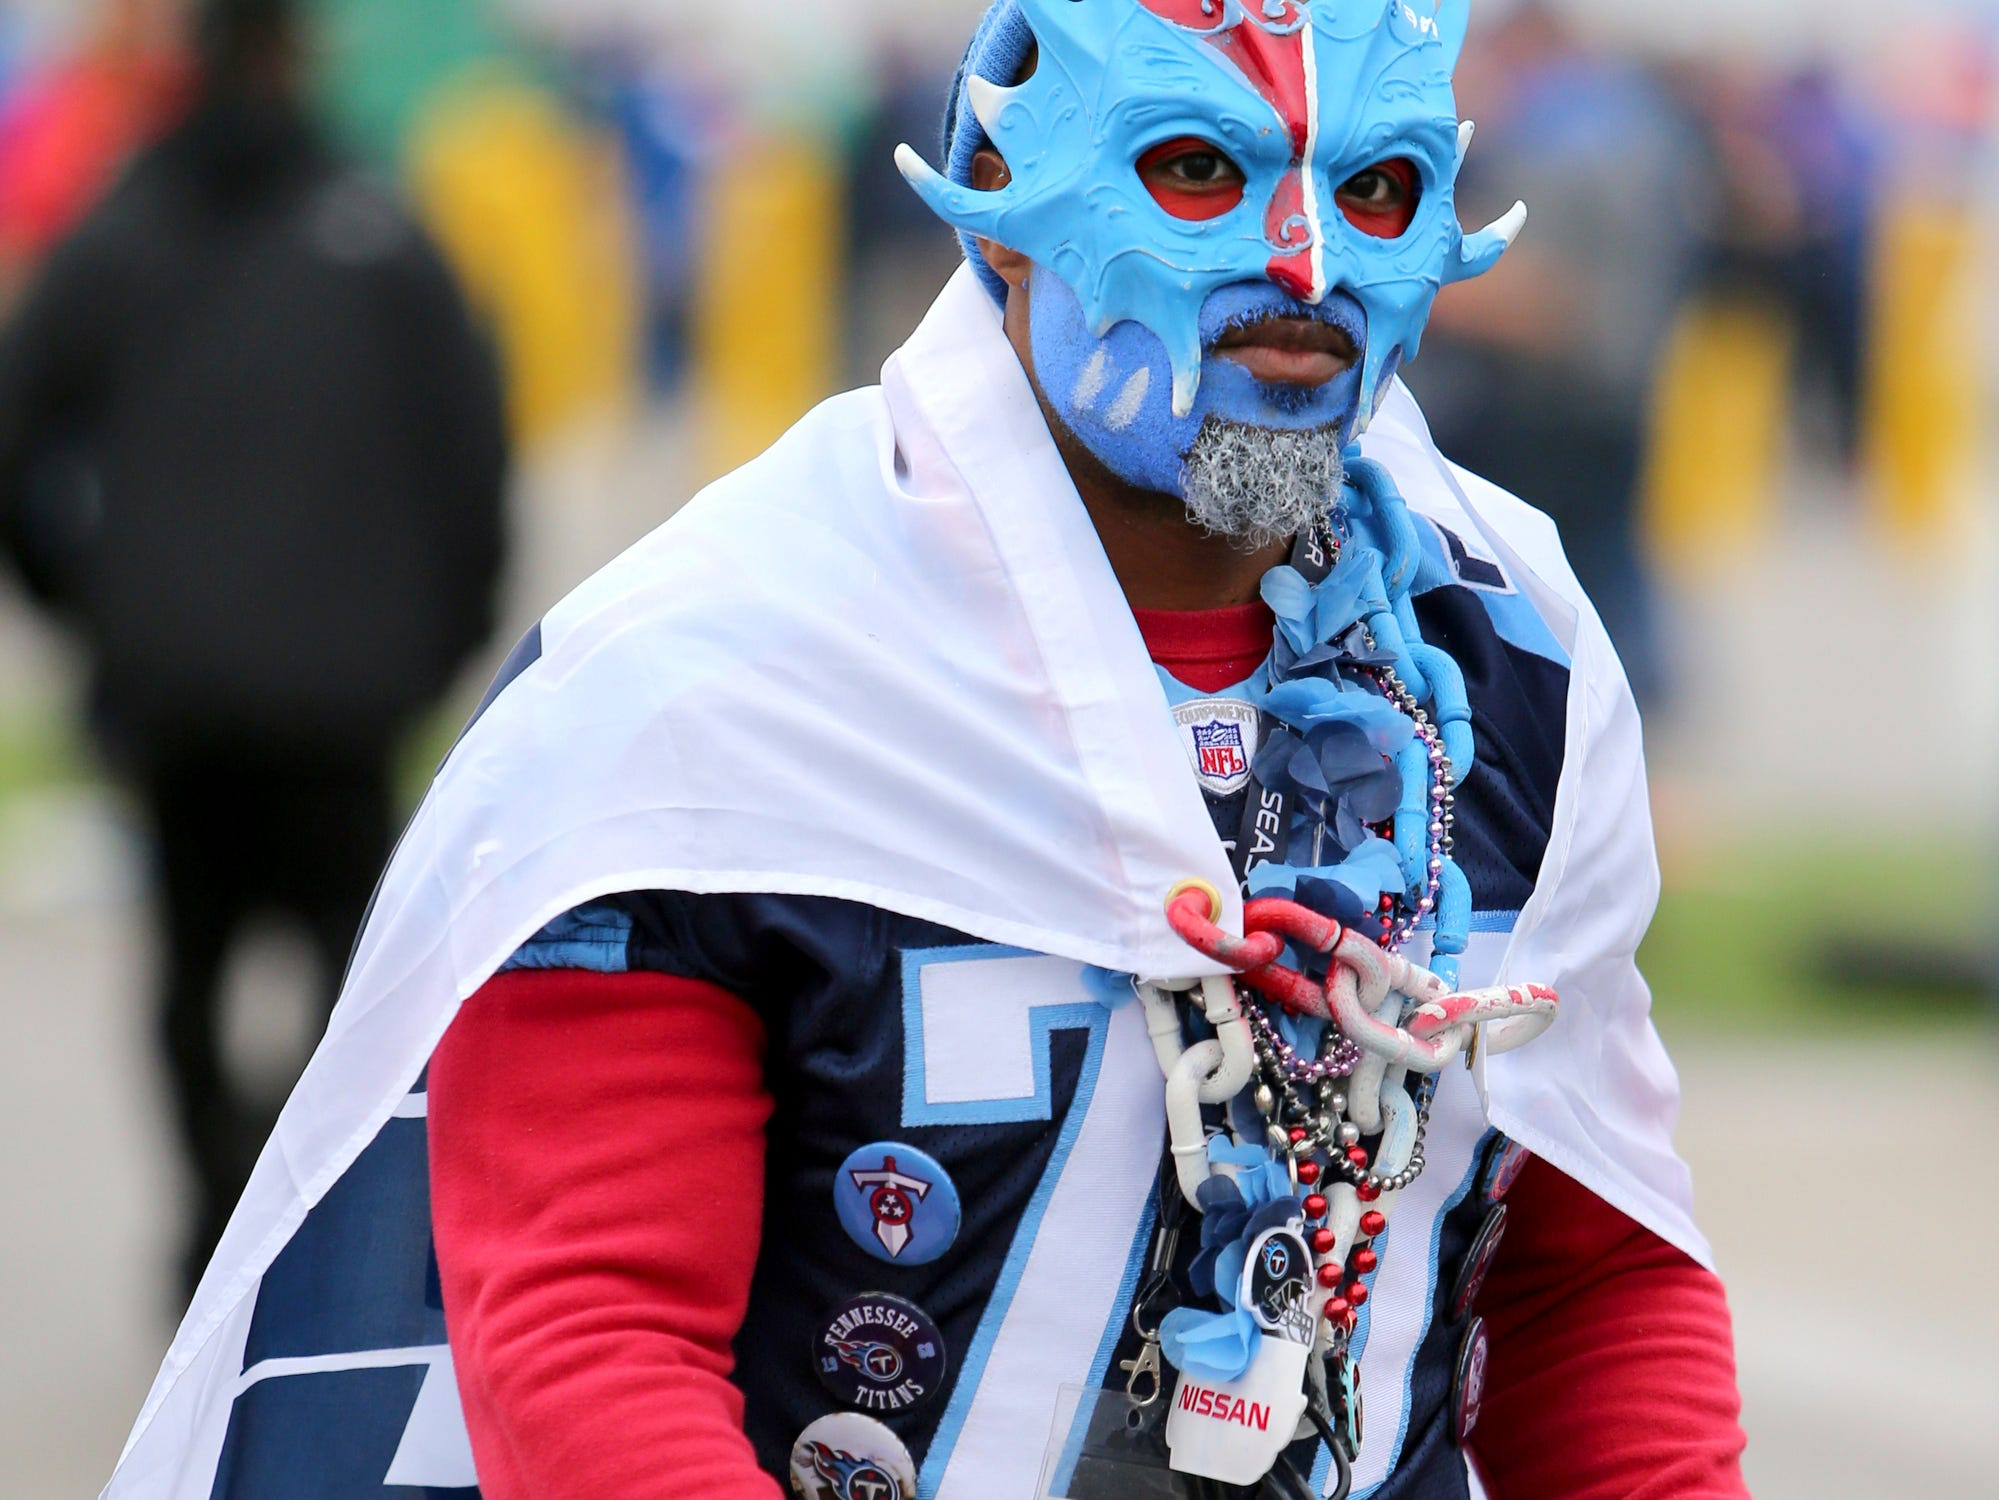 Jarremy Gooden of Nashville, Tenn., walks on the parking lot of New Era Field while tailgating prior to an NFL football game between the Buffalo Bills and the Tennessee Titans, Sunday, Oct. 7, 2018, in Orchard Park, N.Y. (AP Photo/Jeffrey T. Barnes)